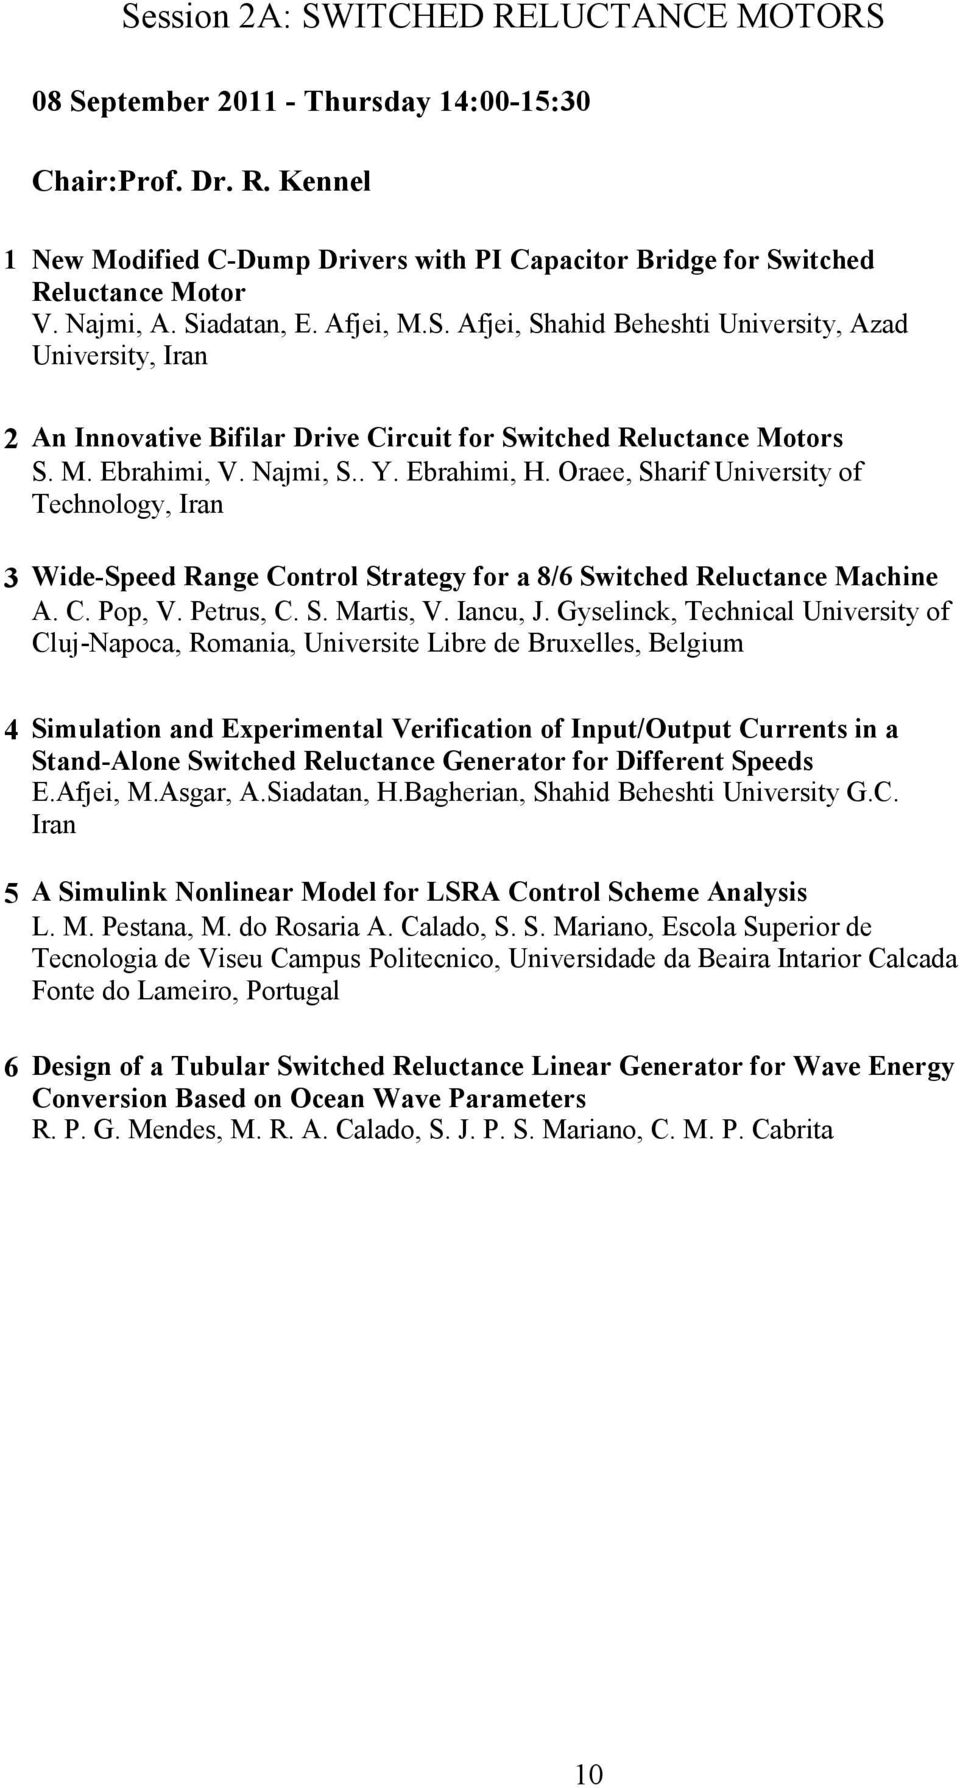 Ebrahimi, H. Oraee, Sharif University of Technology, Iran 3 Wide-Speed Range Control Strategy for a 8/6 Switched Reluctance Machine A. C. Pop, V. Petrus, C. S. Martis, V. Iancu, J.